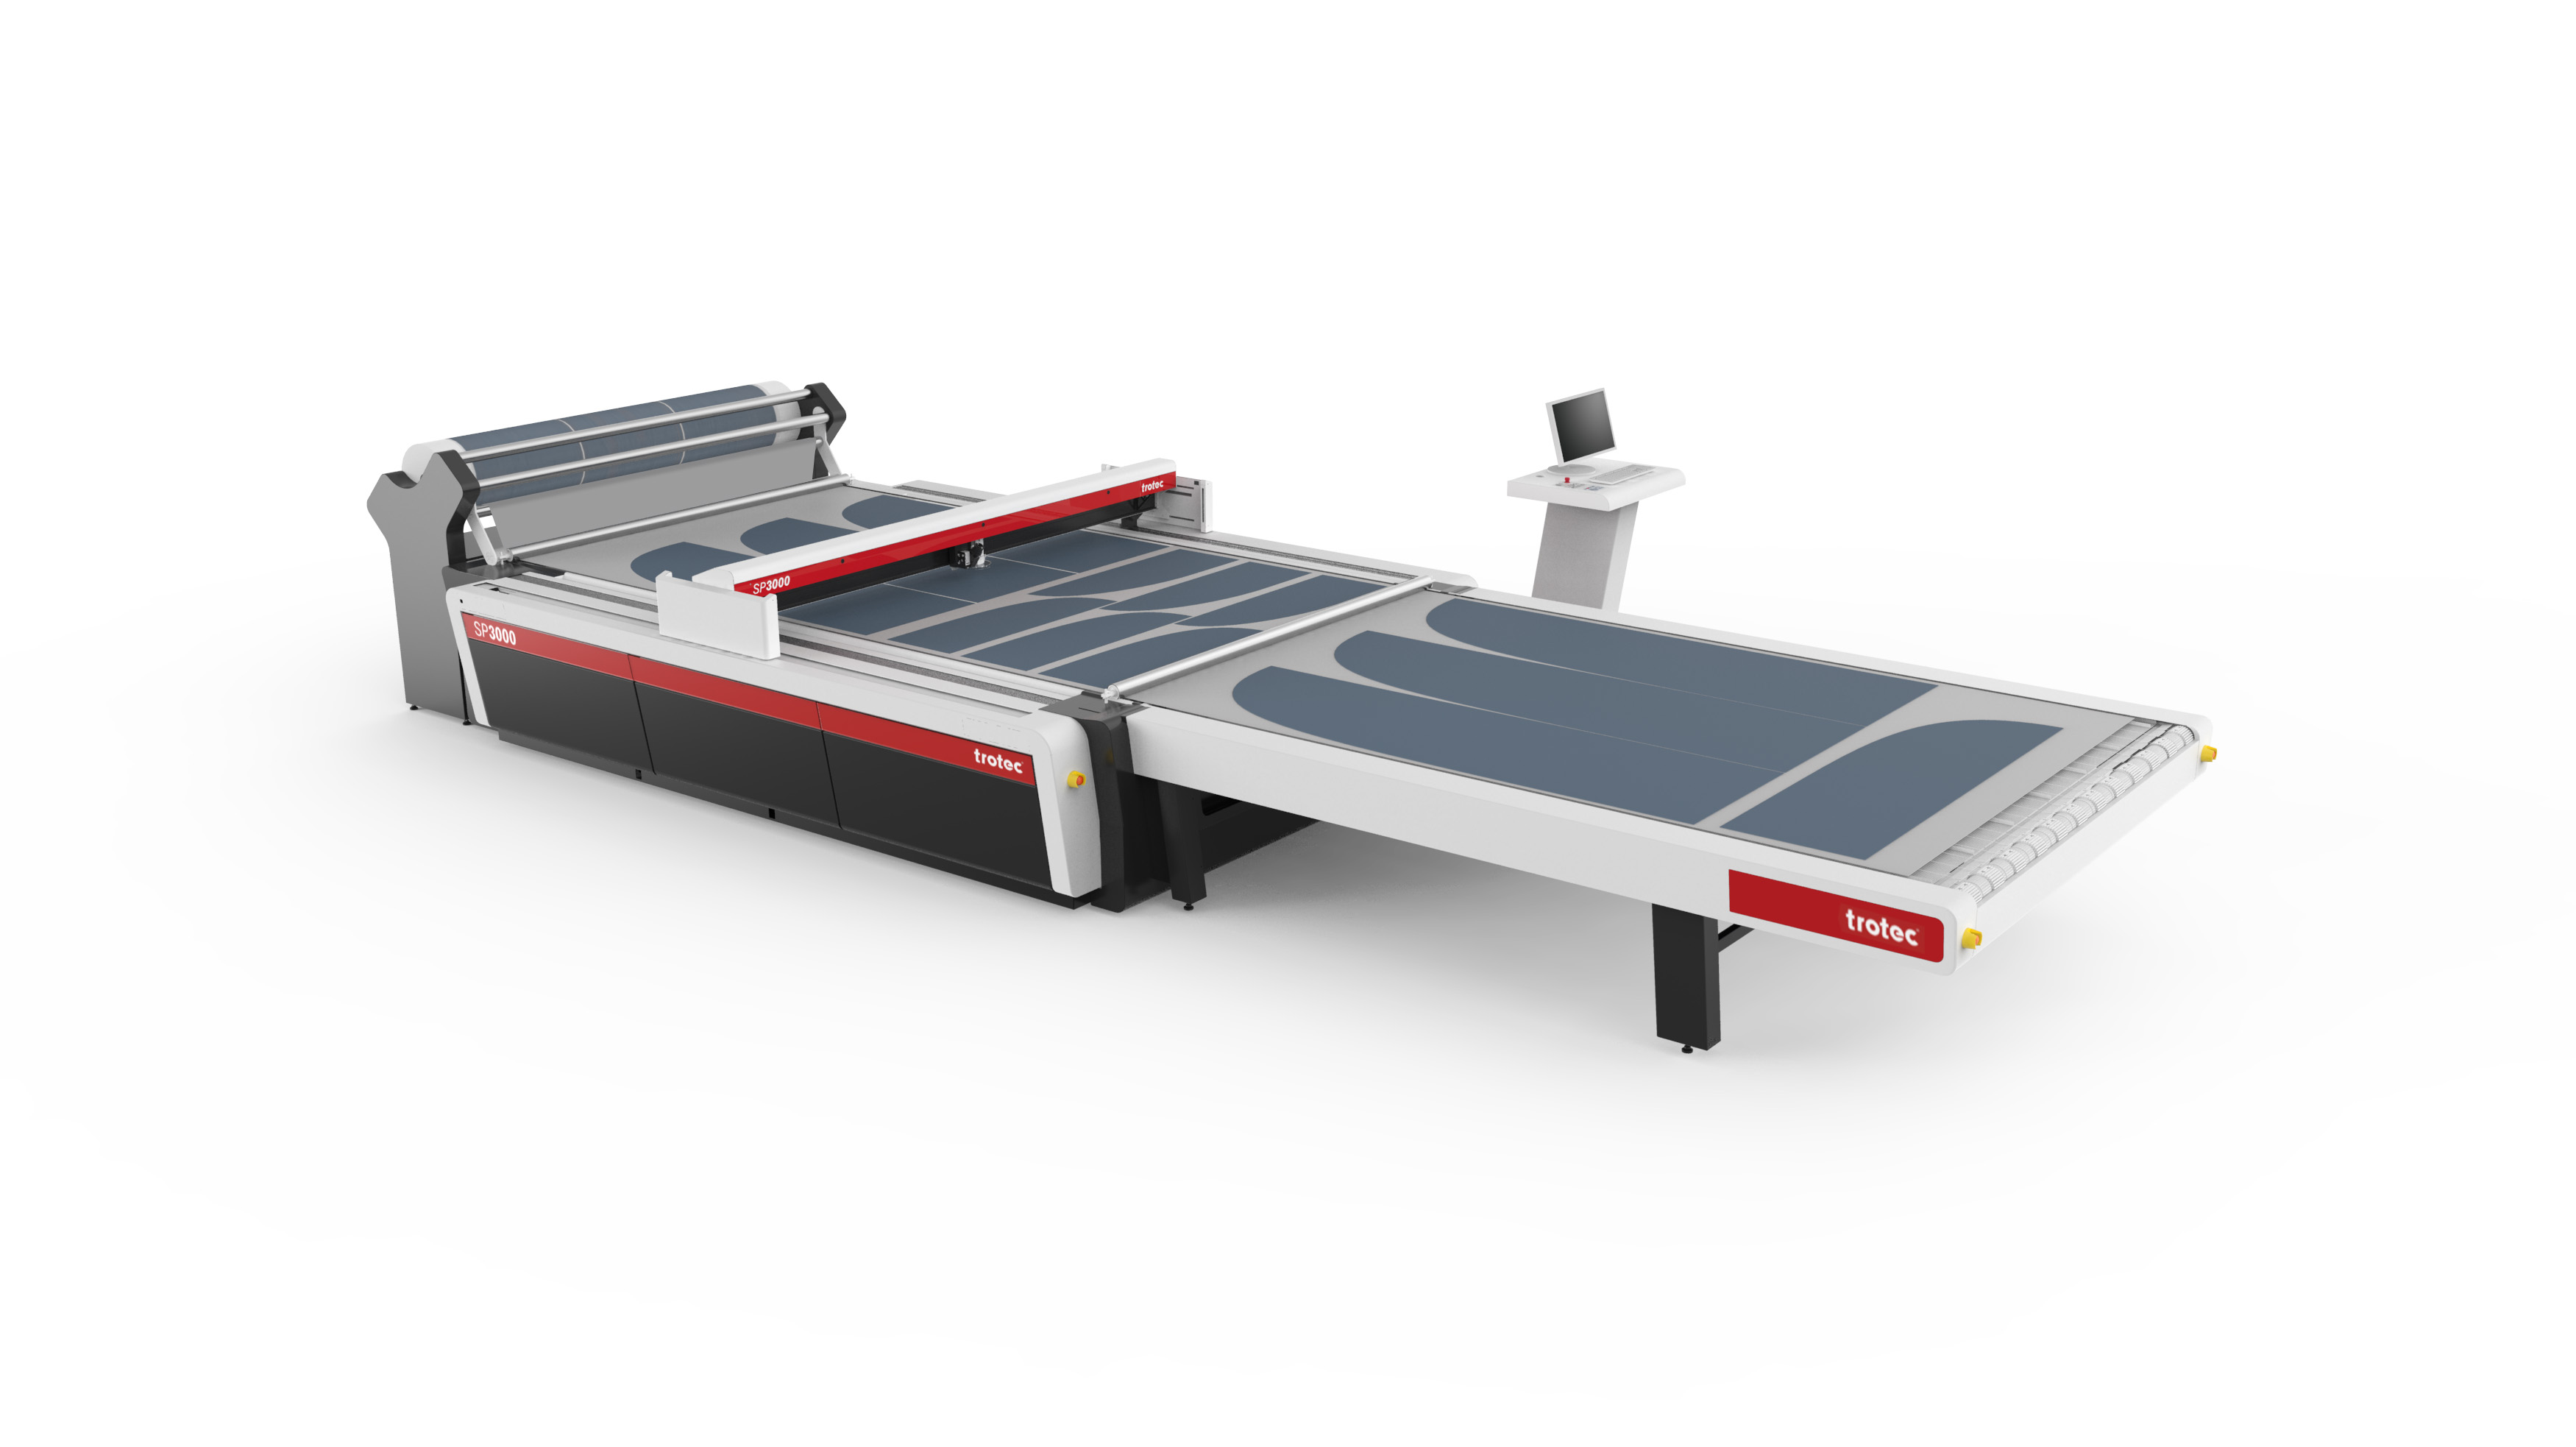 Trotec Add Roll Material Extension To Large Format Laser